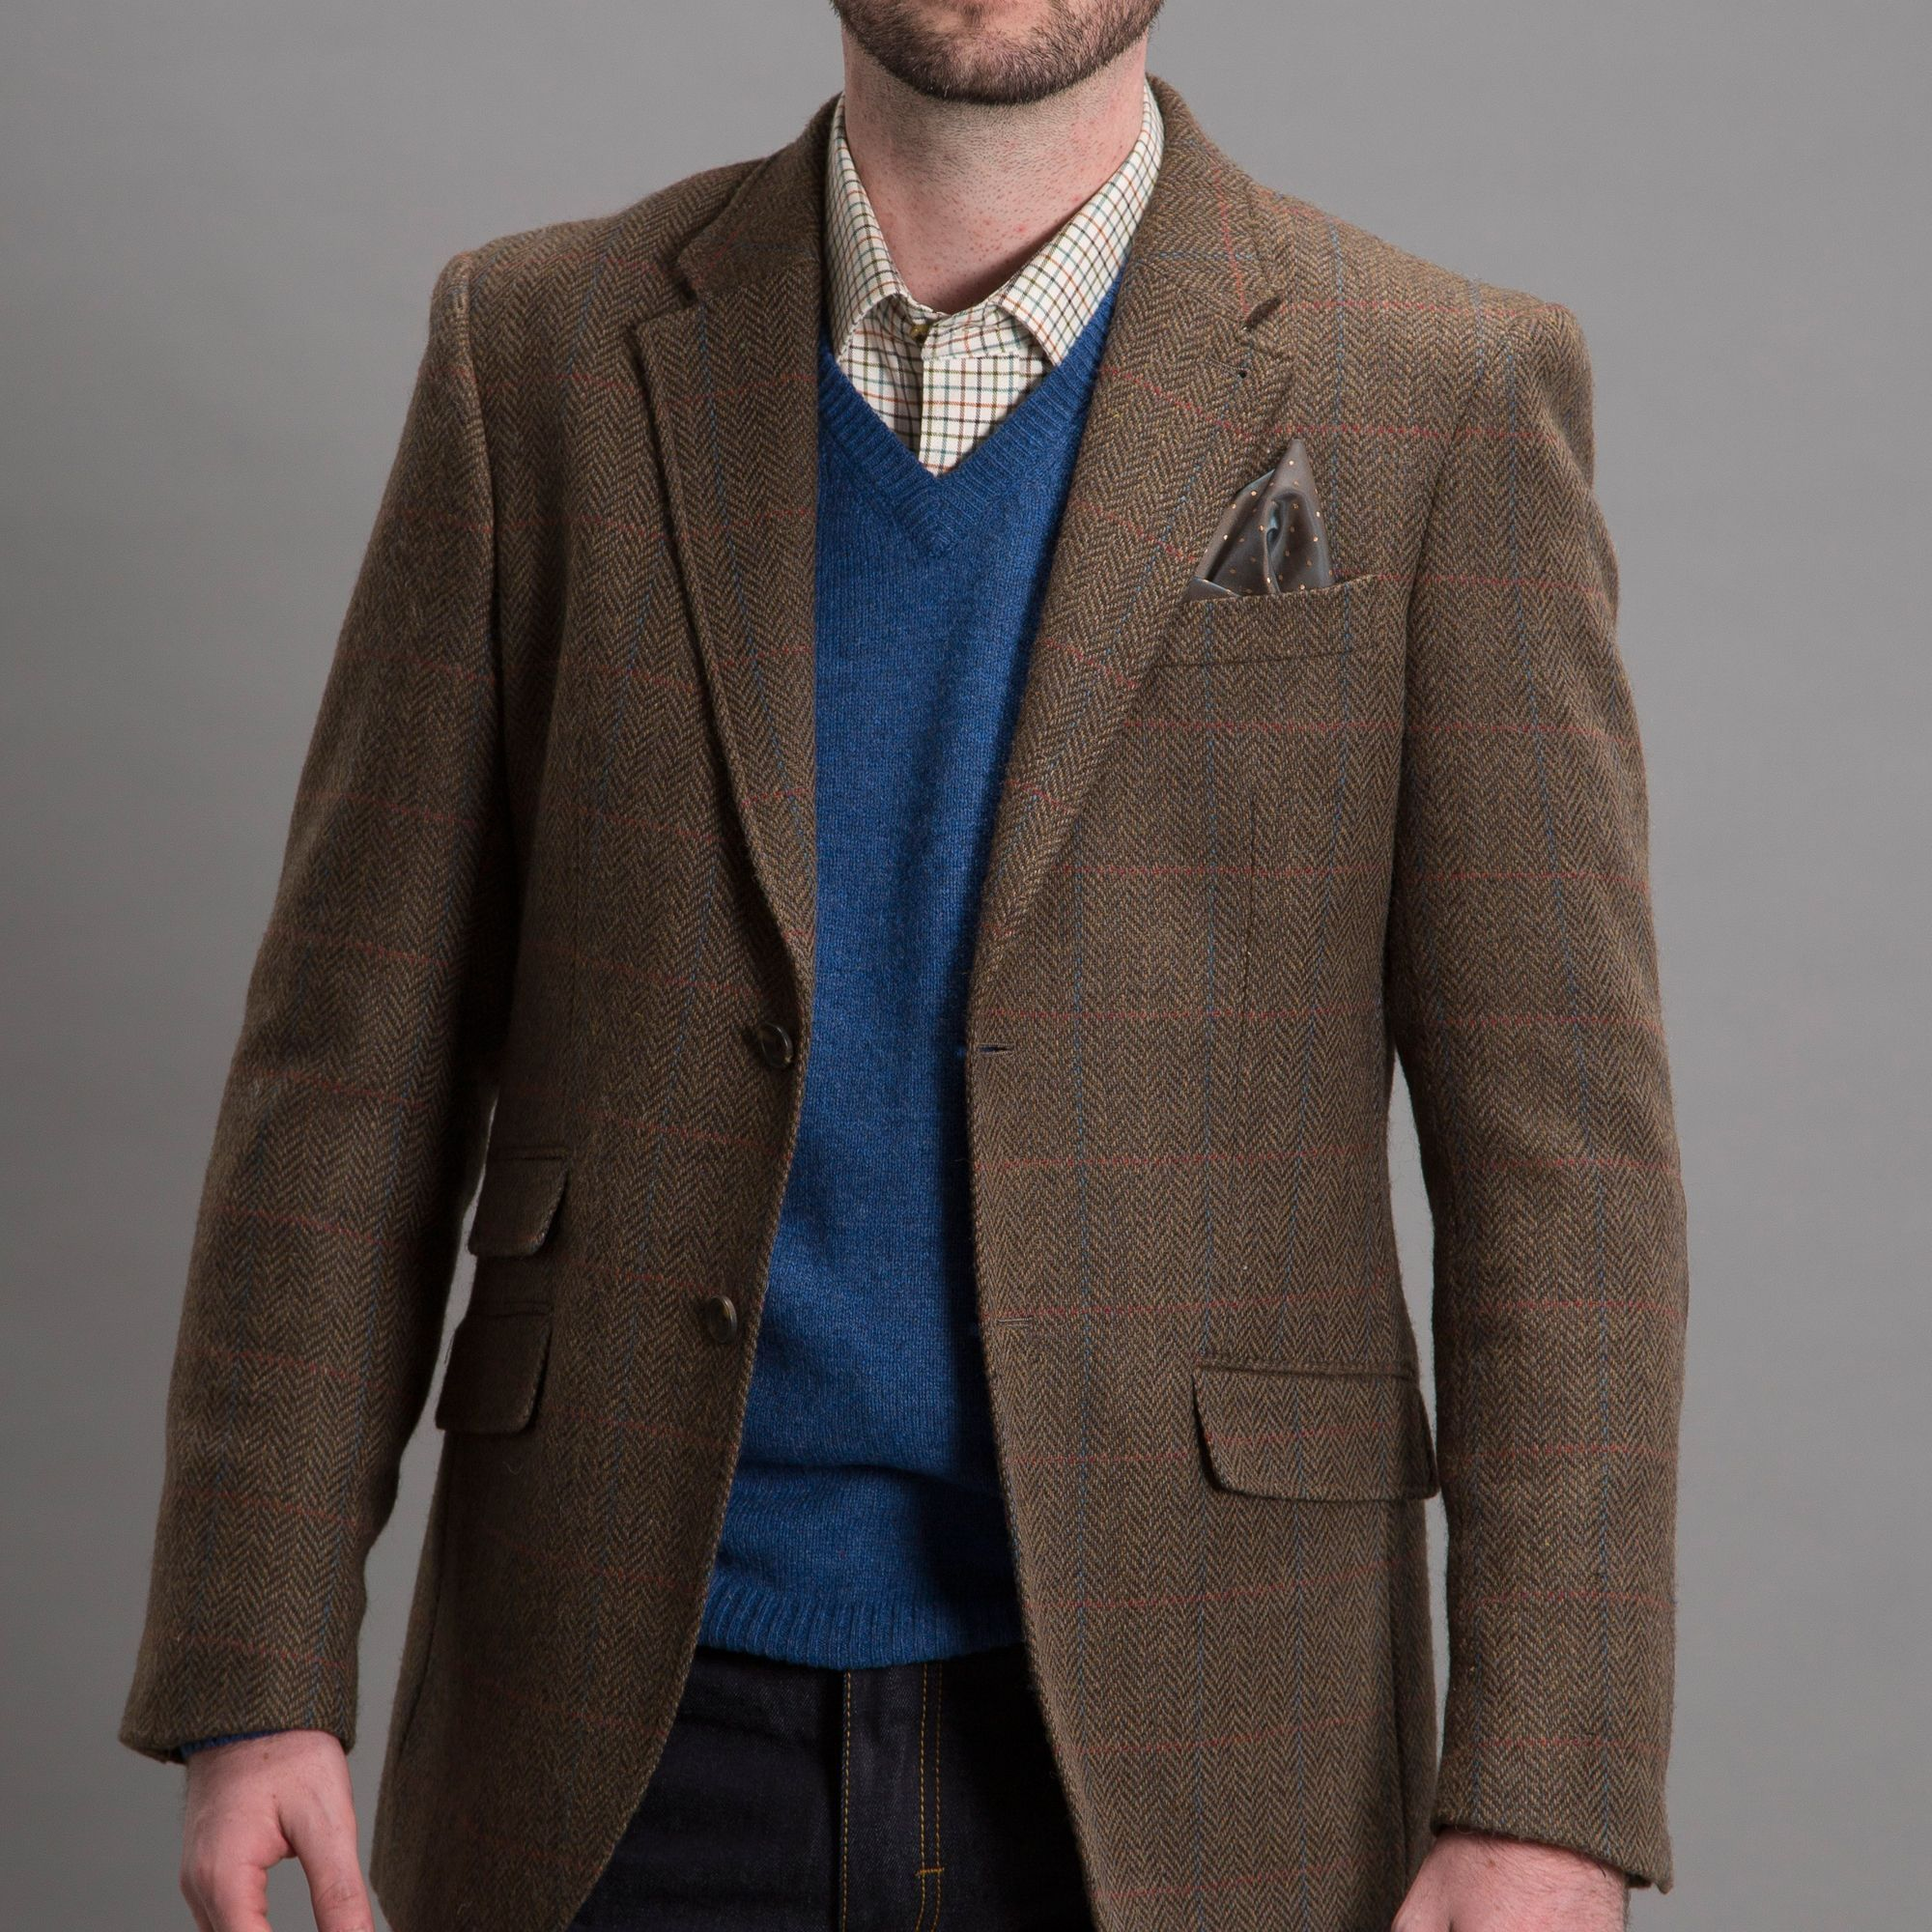 HARVEY & JONES 'Nick' Wool Mix Brown Blazer - Blazers & Jackets ...